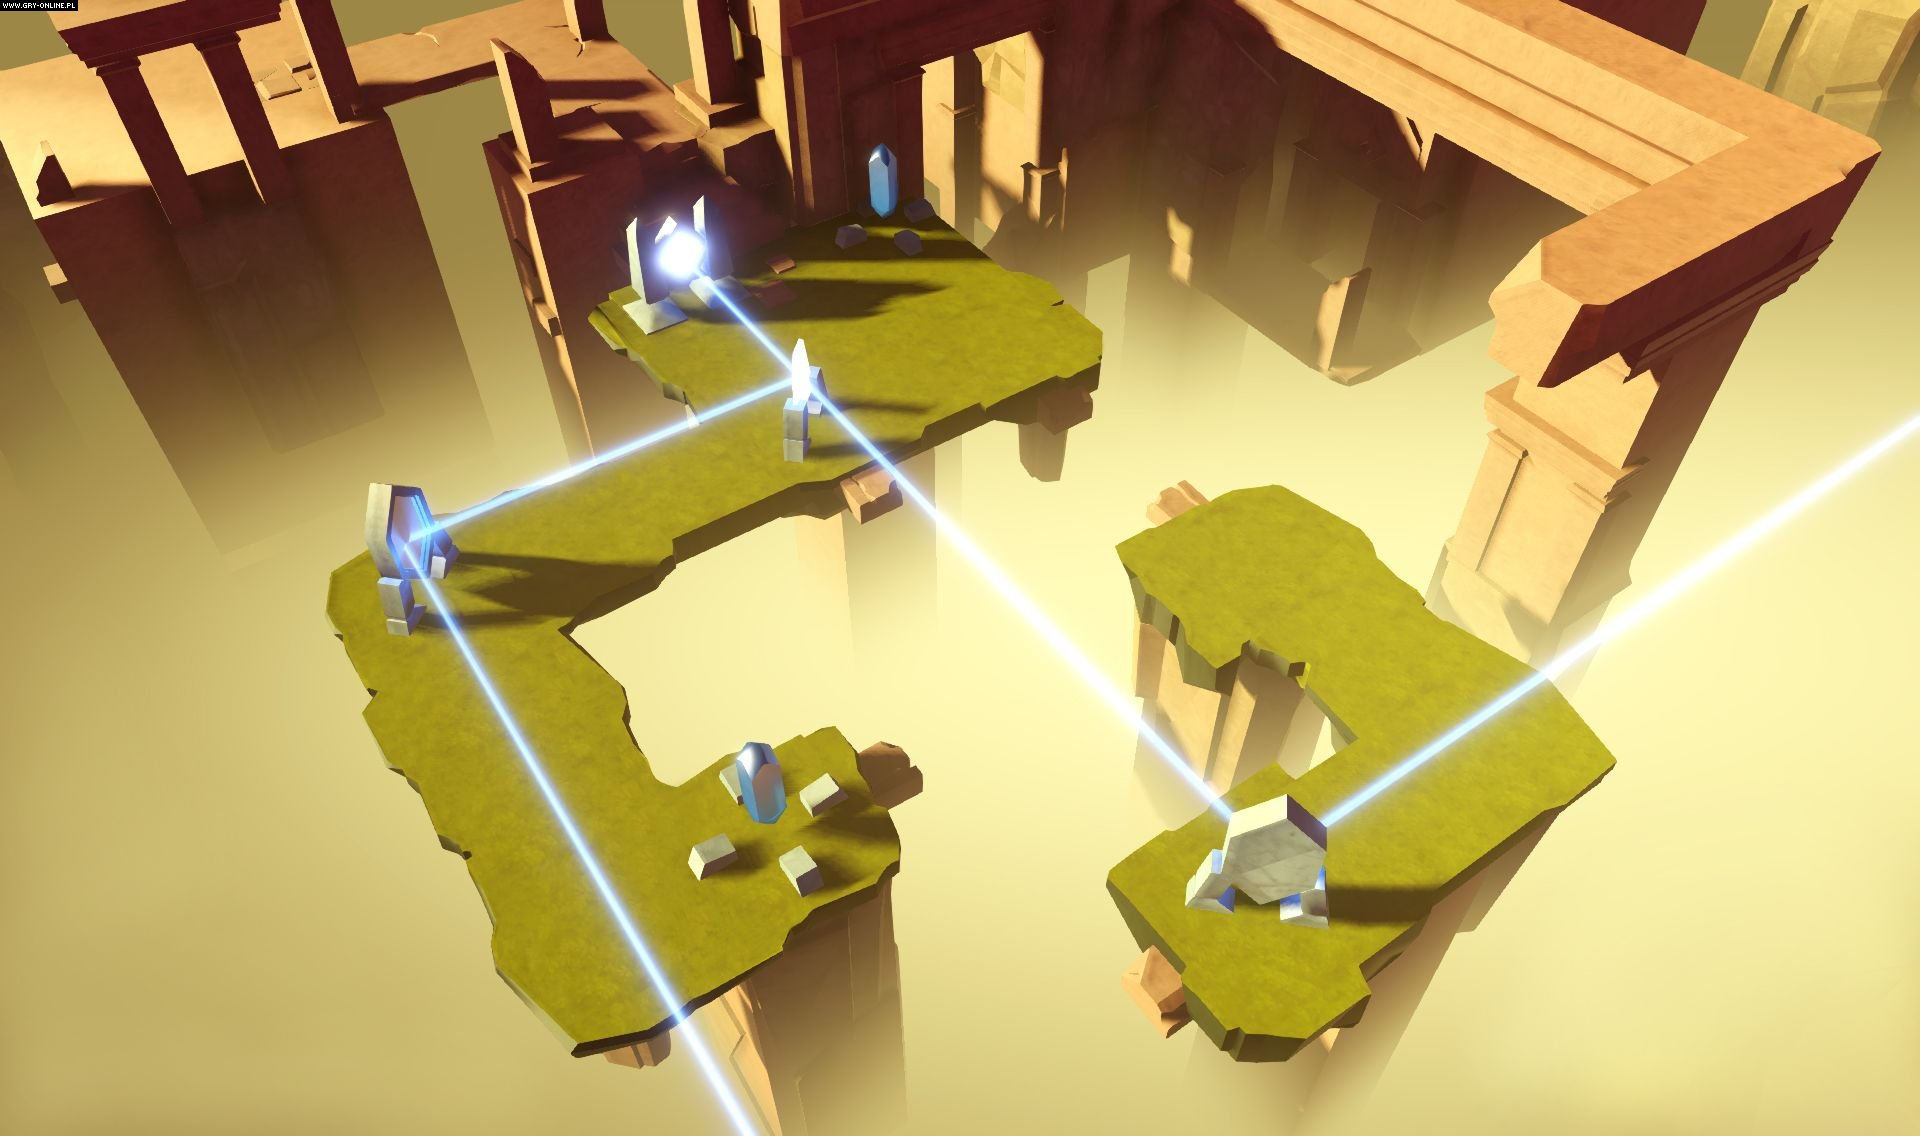 Archaica: The Path of Light PC Games Image 33/33, TwoMammoths